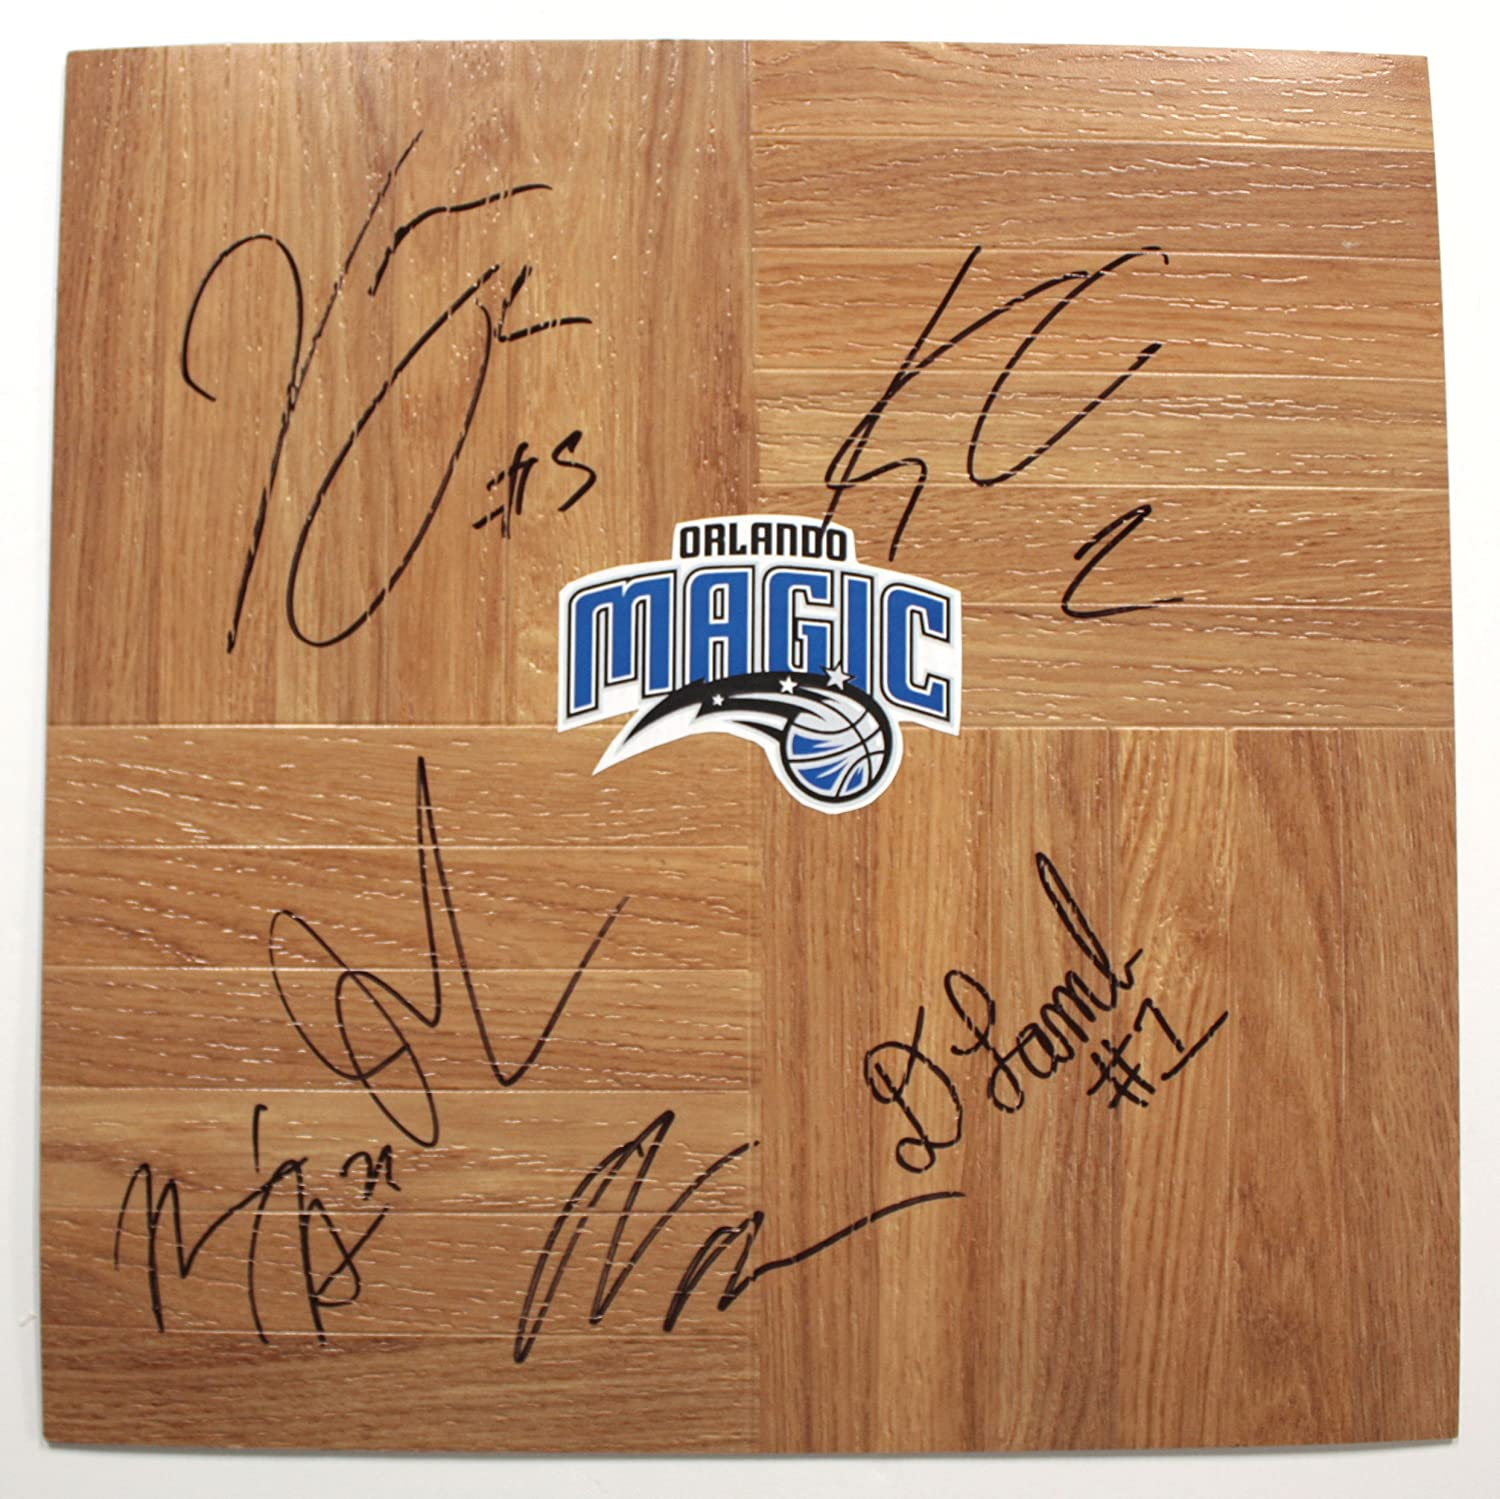 Orlando Magic 2013-14 Team Autographed Signed Basketball Floorboard Victor Oladipo